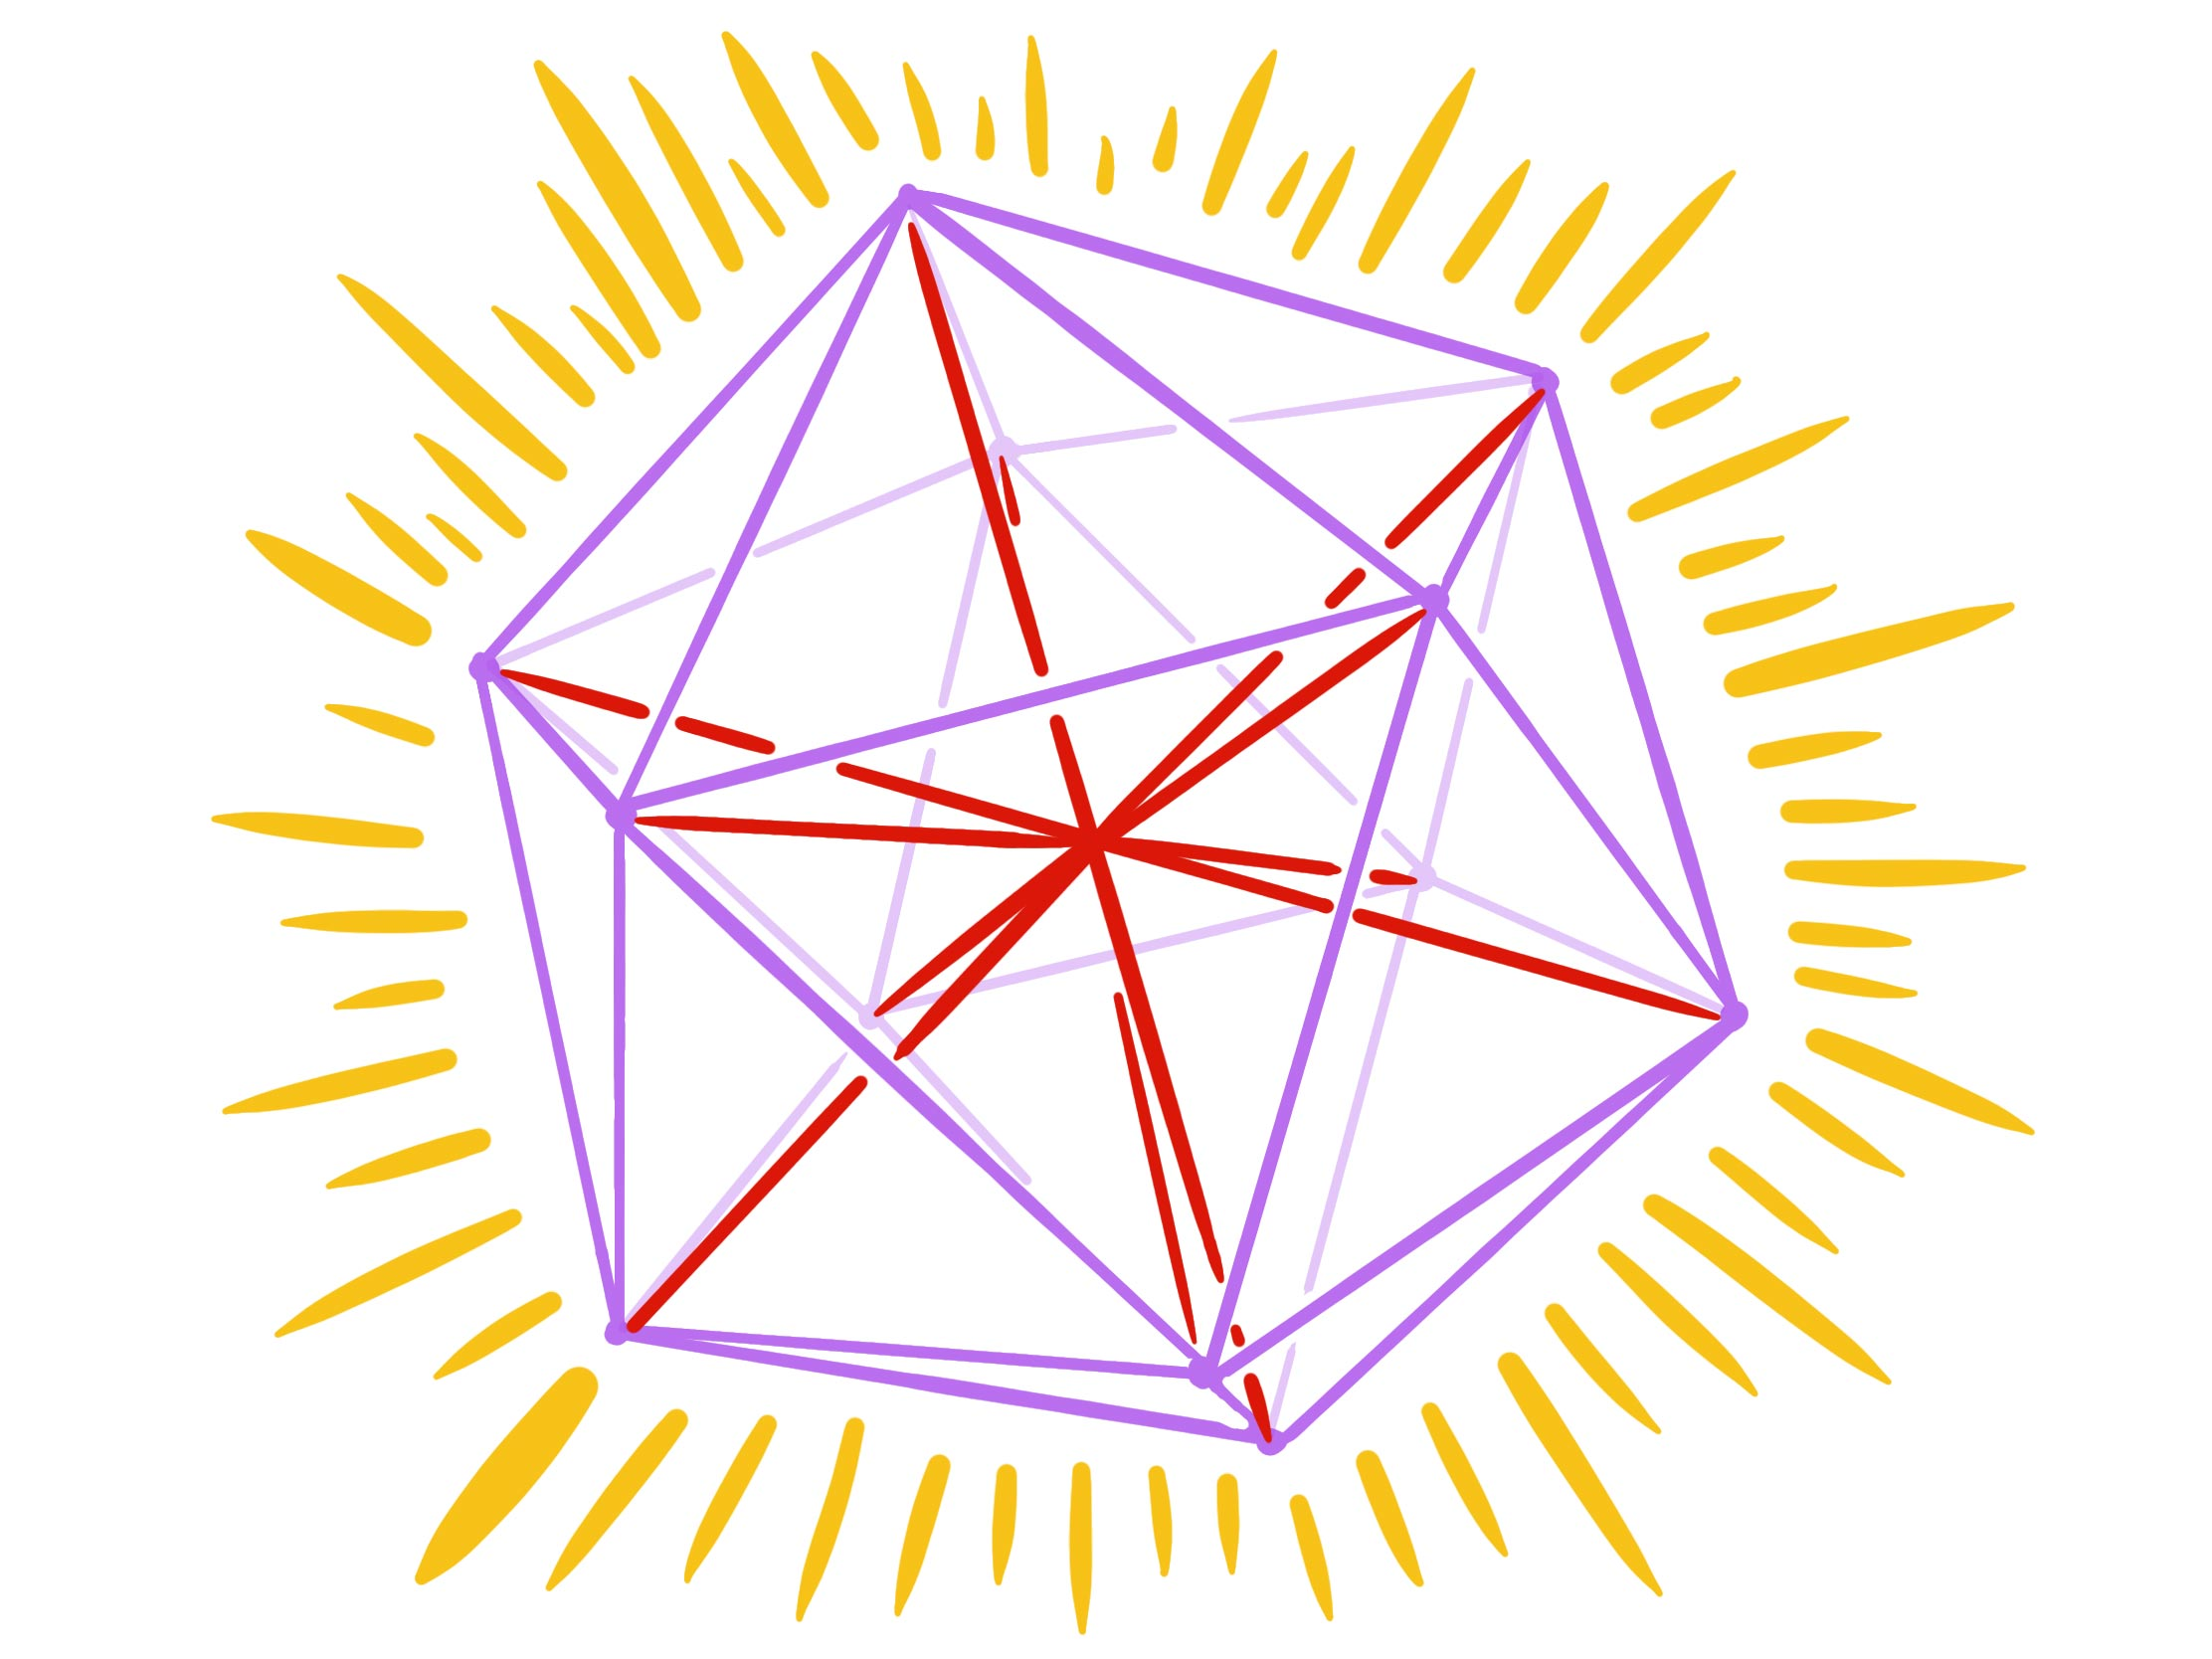 MIT Mathematicians Solve an Old Geometry Problem on Equiangular Lines thumbnail